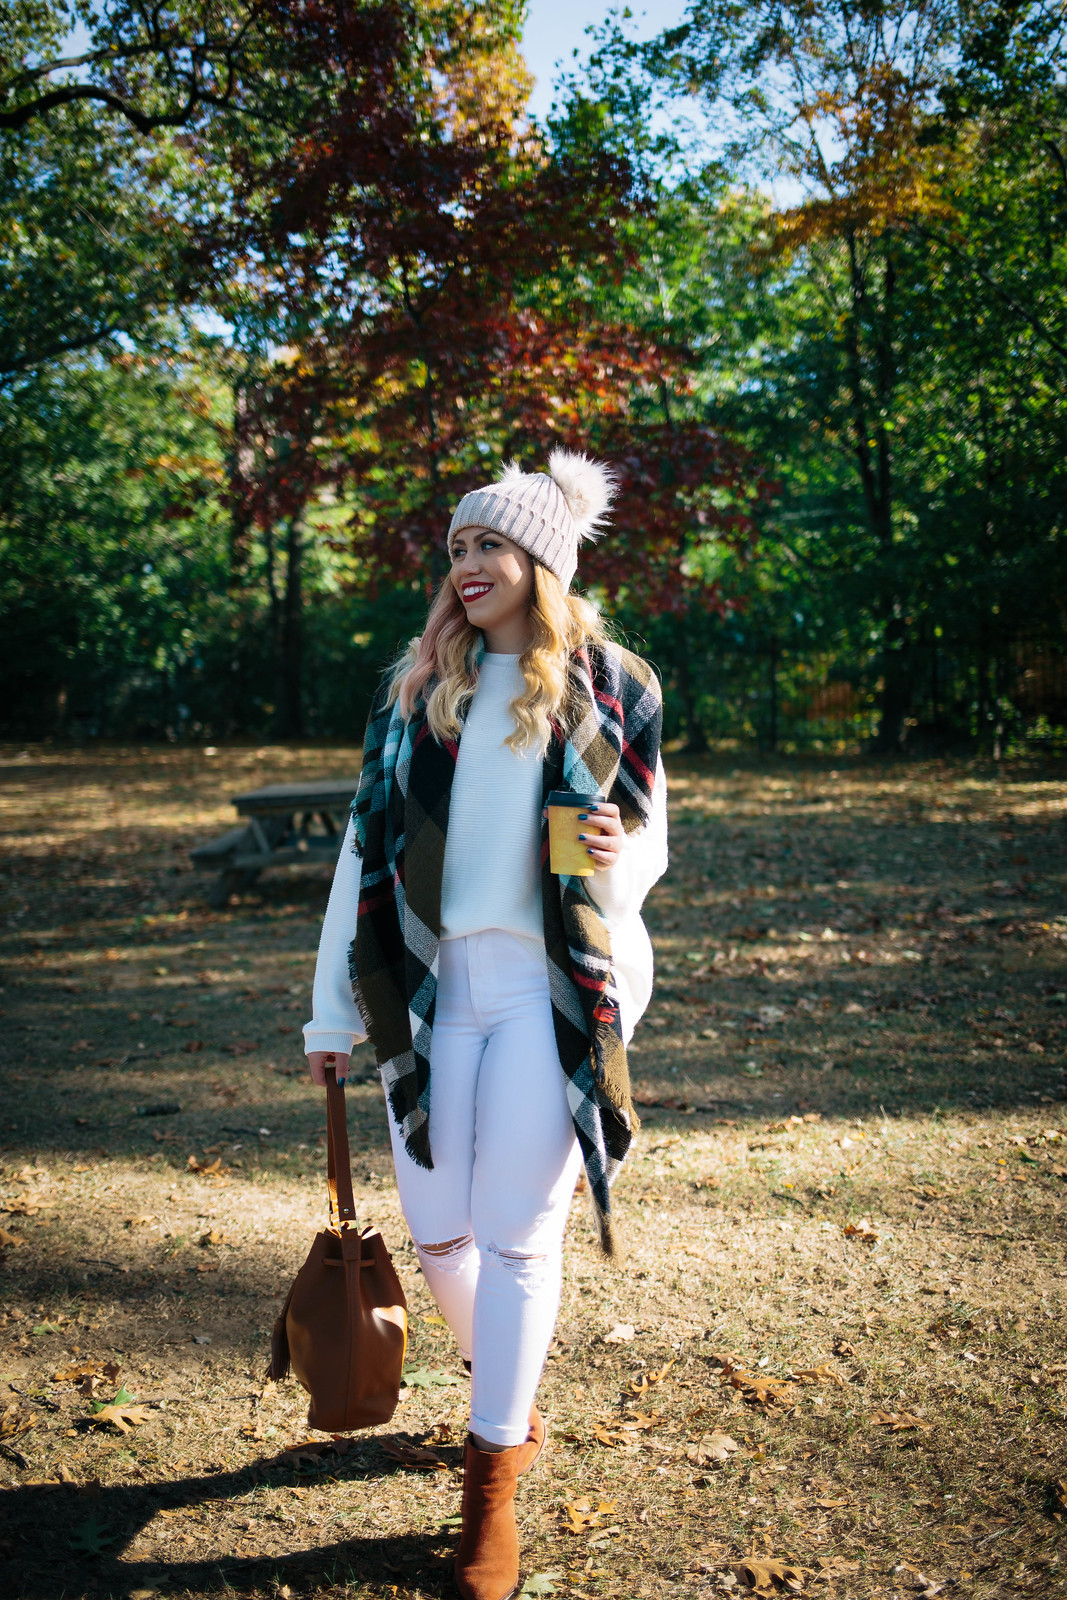 Winter White Outfit | Beige Beanie | Green Plaid Blanket Scarf | White Jeans | Fall Foliage in NY